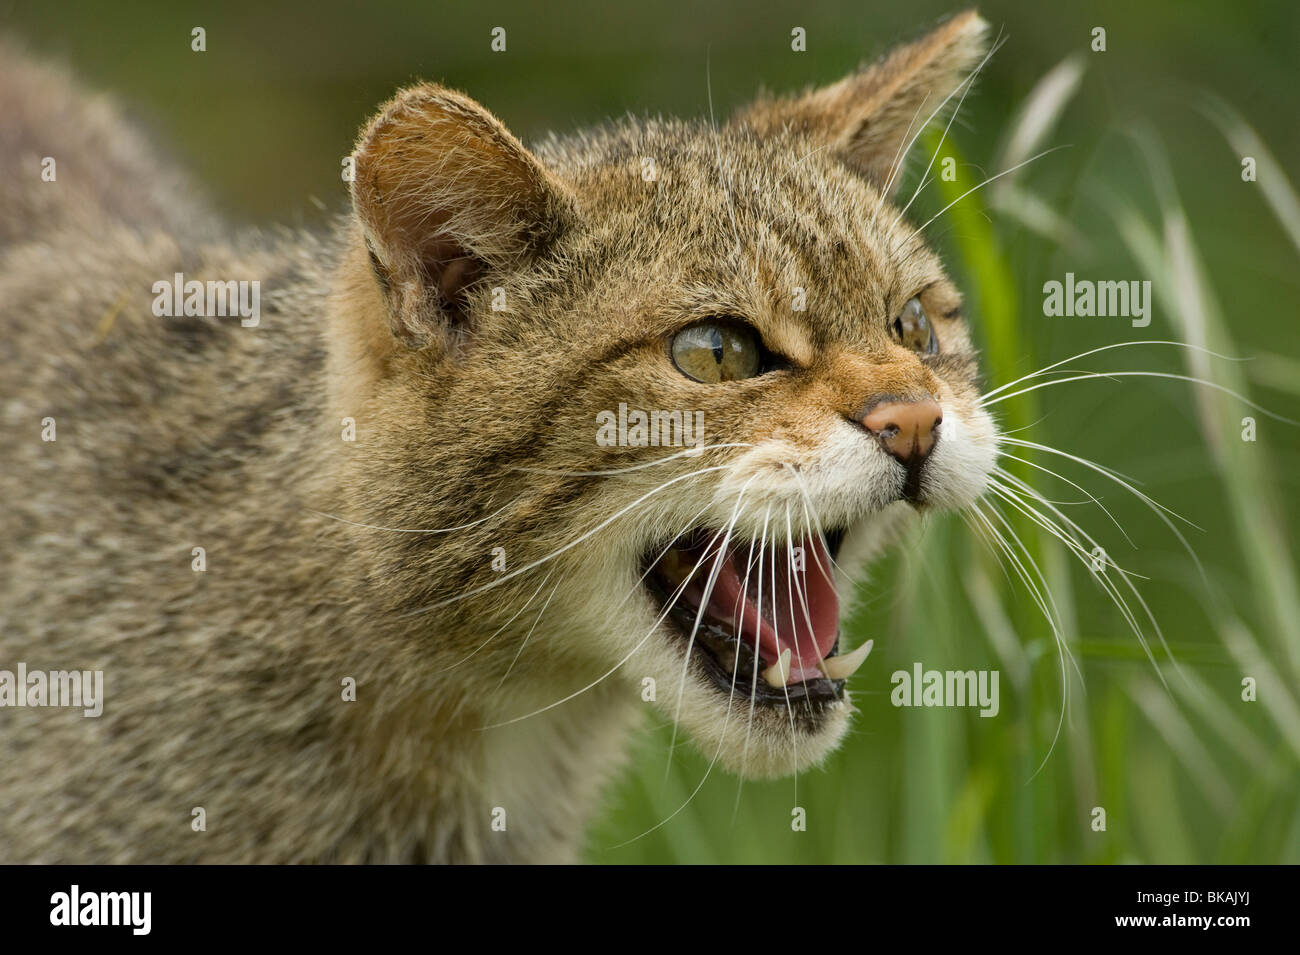 Wild cat Felis silvestris snarling - Stock Image